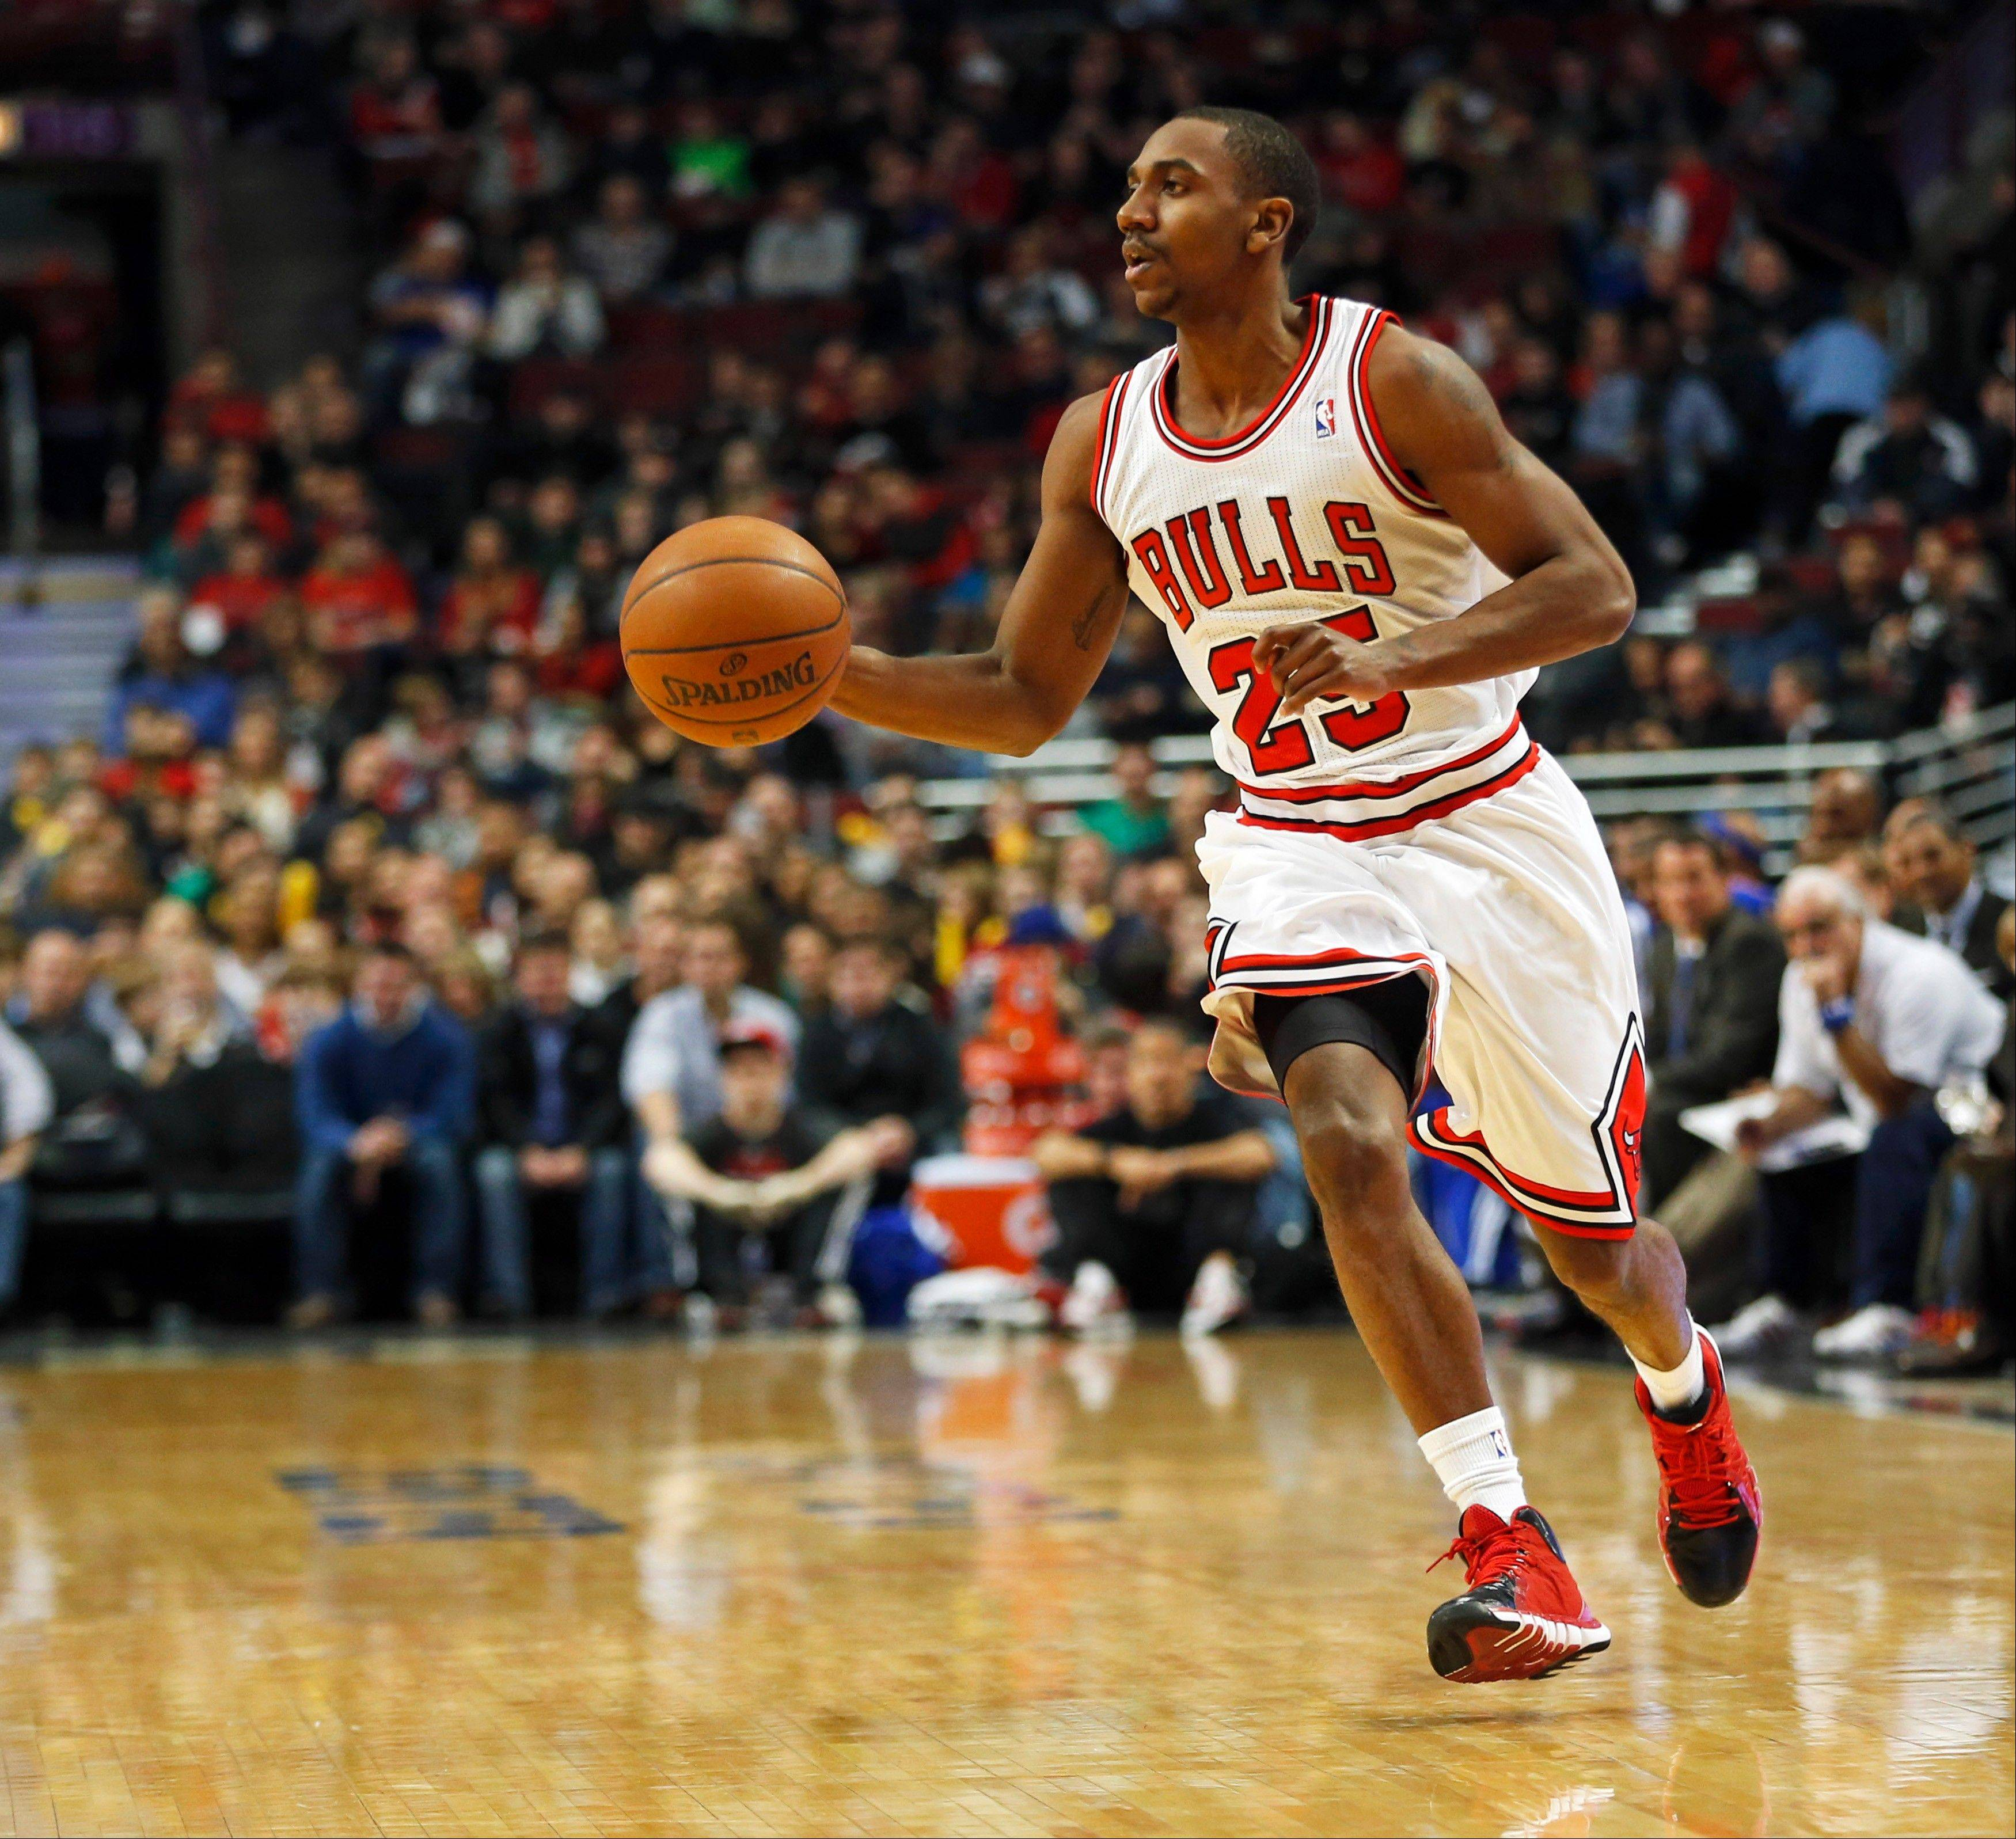 The Bulls have sent guard Marquis Teague to the NBA's D-League to get more playing time while Kirk Hinrich and D.J. Augustin hold down the point-guard position.